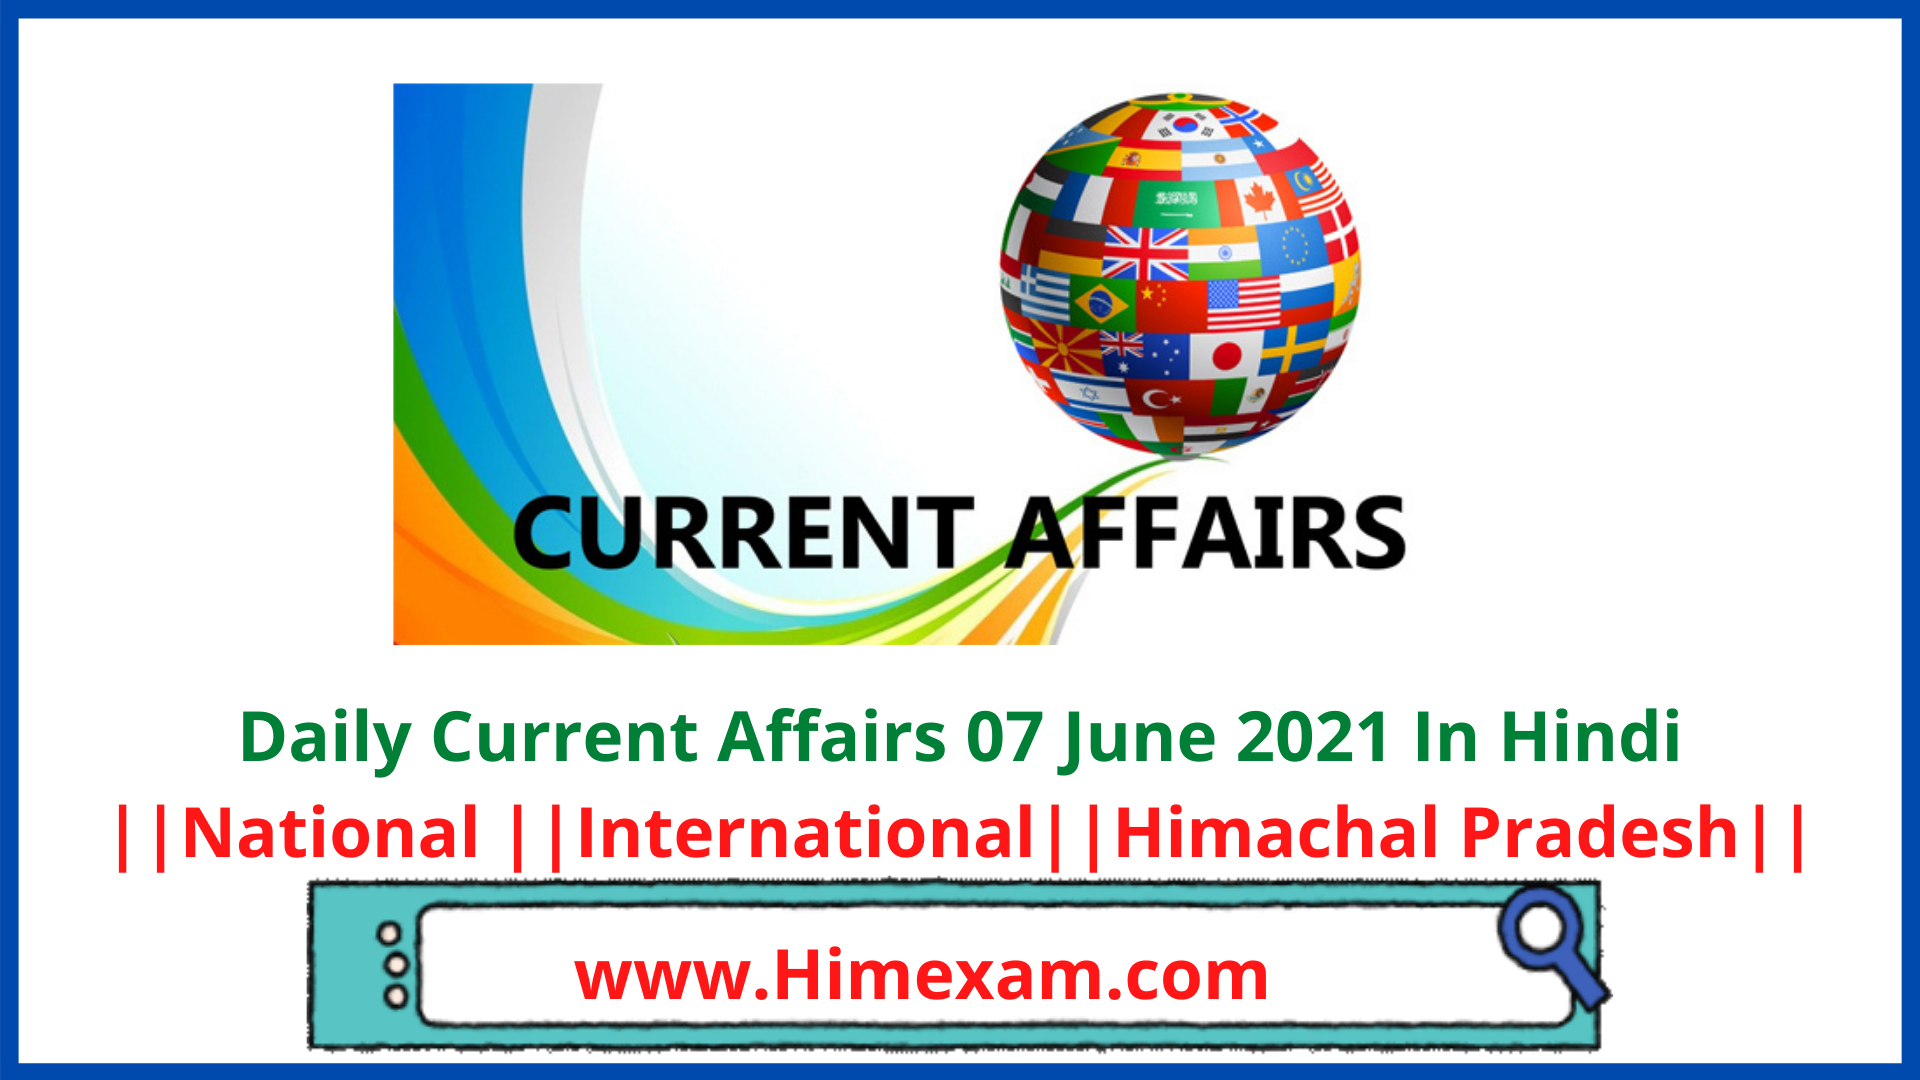 Daily Current Affairs 07 June 2021 In Hindi